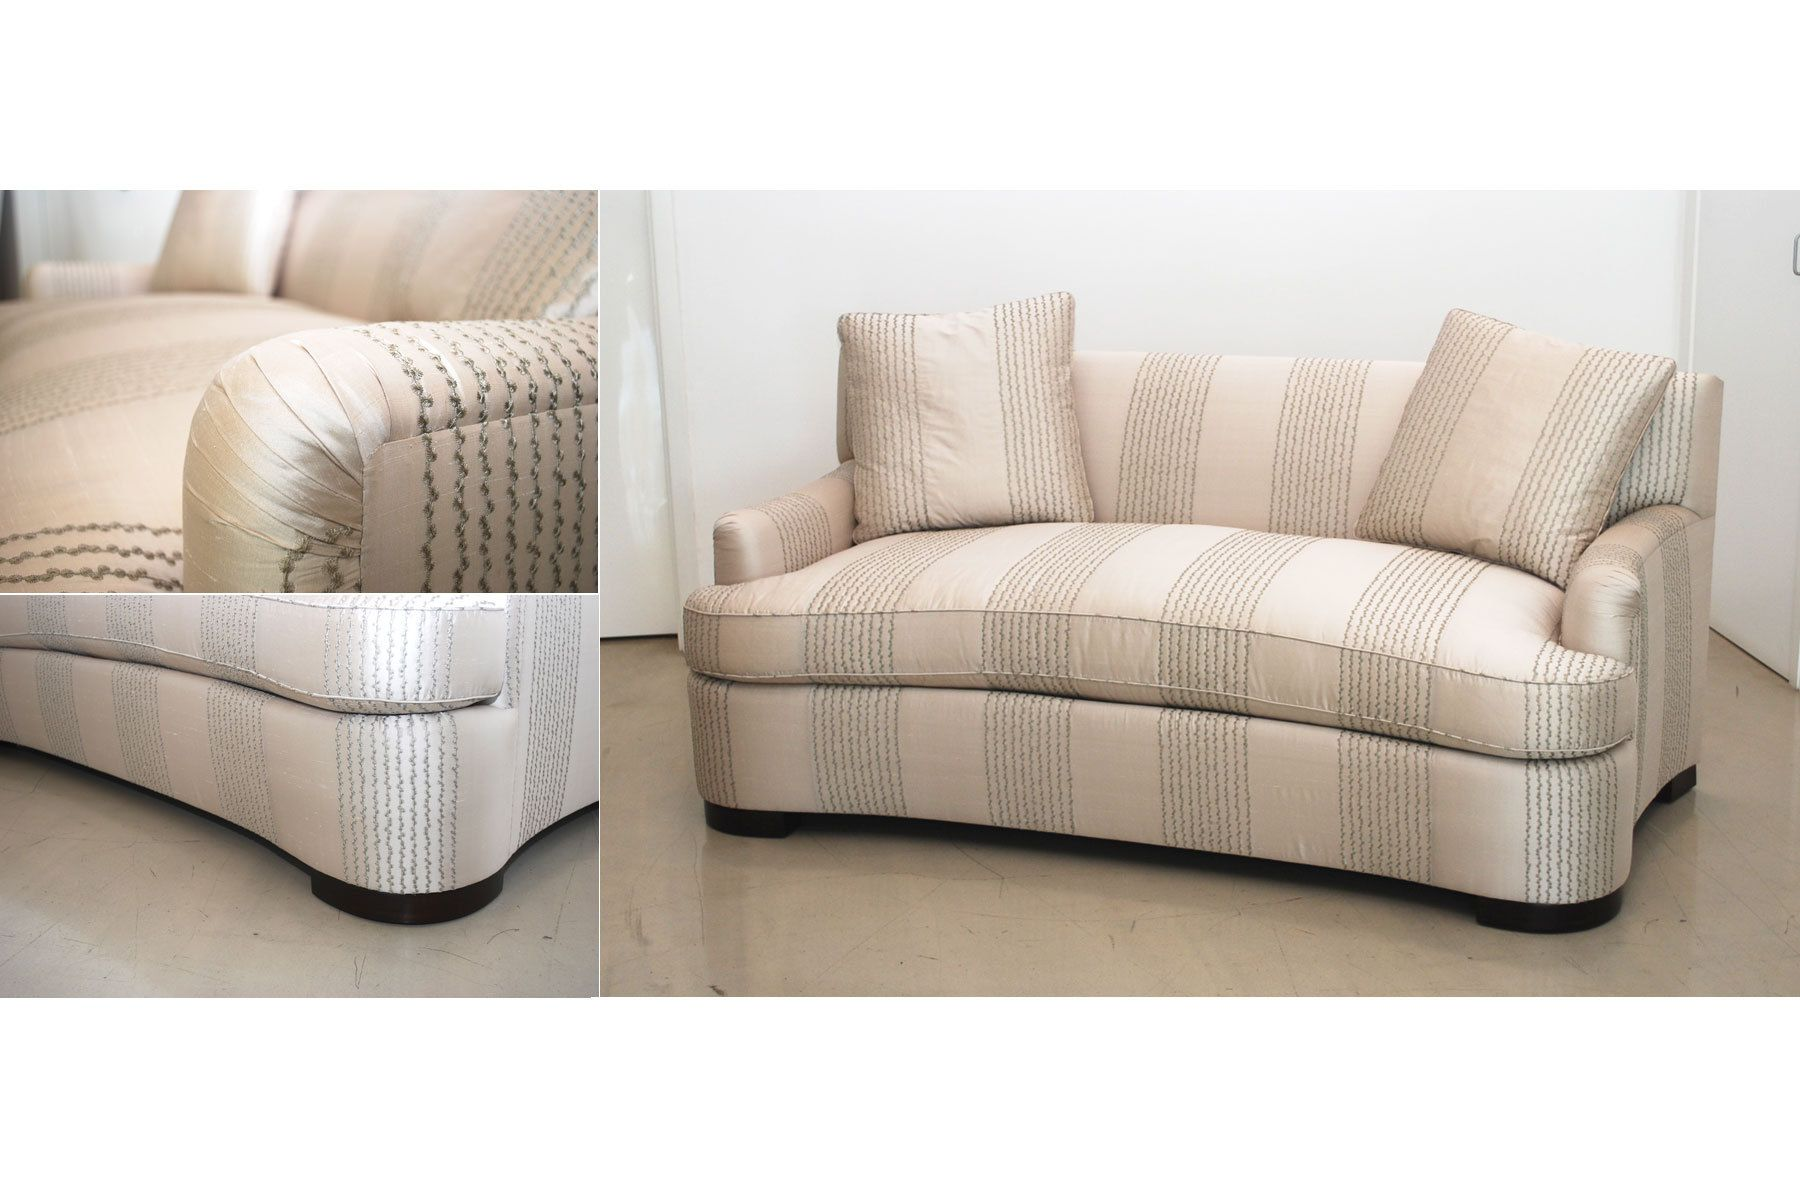 Nice Curved Loveseat Sofa Trend 44 For Your Sofas And Couches Ideas With